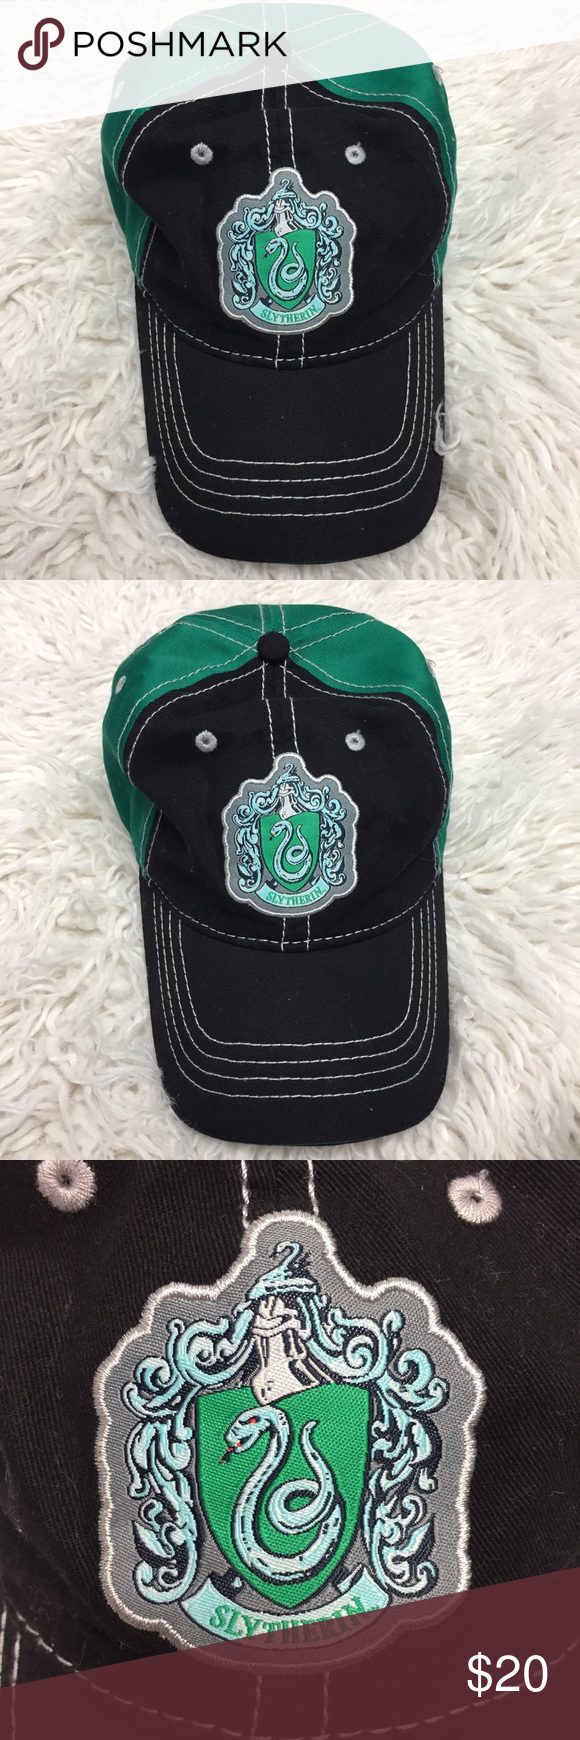 Slytherin Dad Hat from Harry Potter World Universal Studios authentic  product. Reasonable offers are always welcome! Please no trades 🌸 harry  potter ... 742ba315e8e